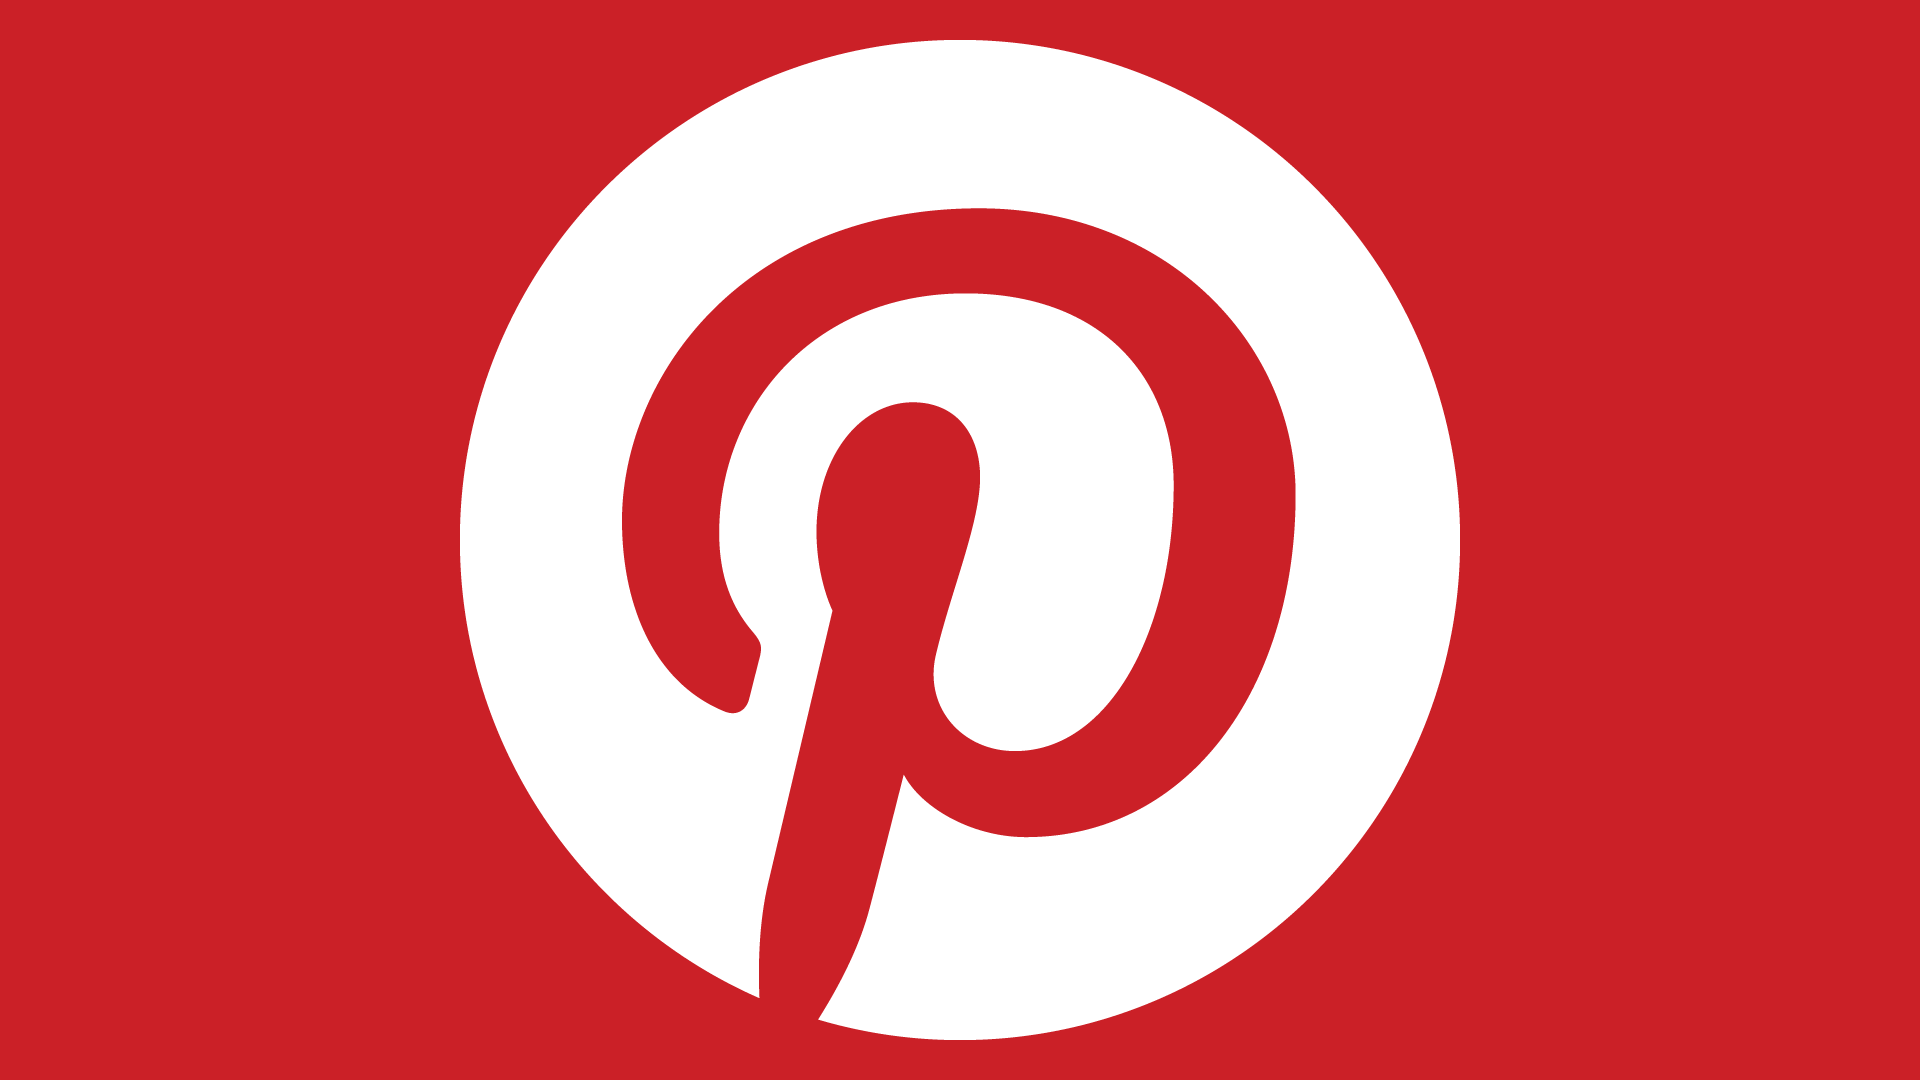 How To Curate Content On Pinterest, Slideshare And